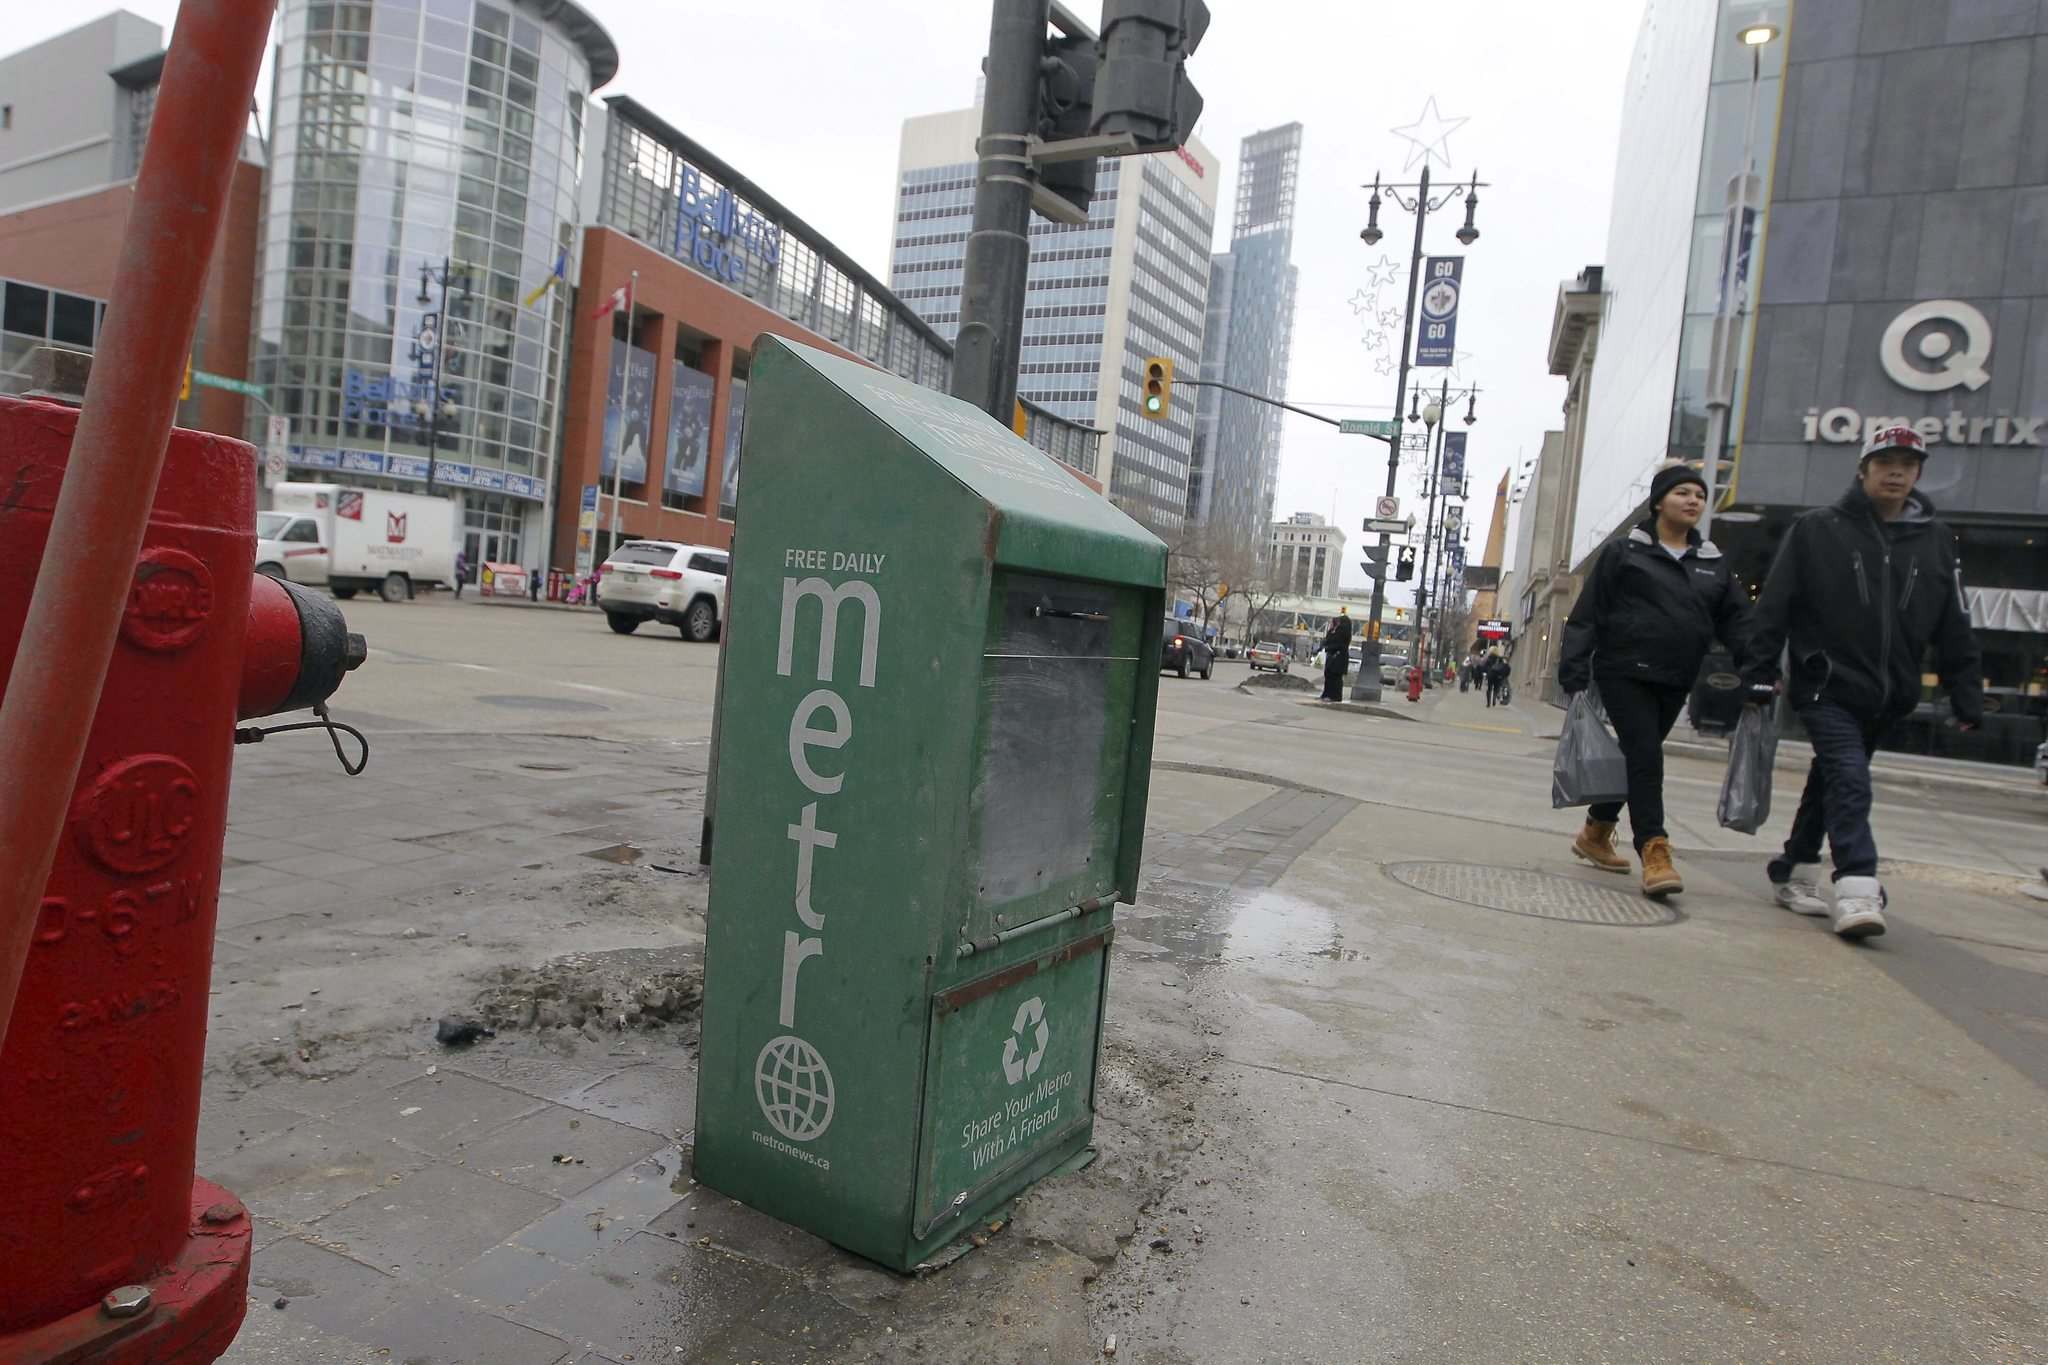 BORIS MINKEVICH / WINNIPEG FREE PRESS</p><p>Winnipeg&rsquo;s free daily Metro newspaper was among the casualties after the Torstar/Postmedia asset swap resulted in the closure of dozens of community and commuter papers.</p>